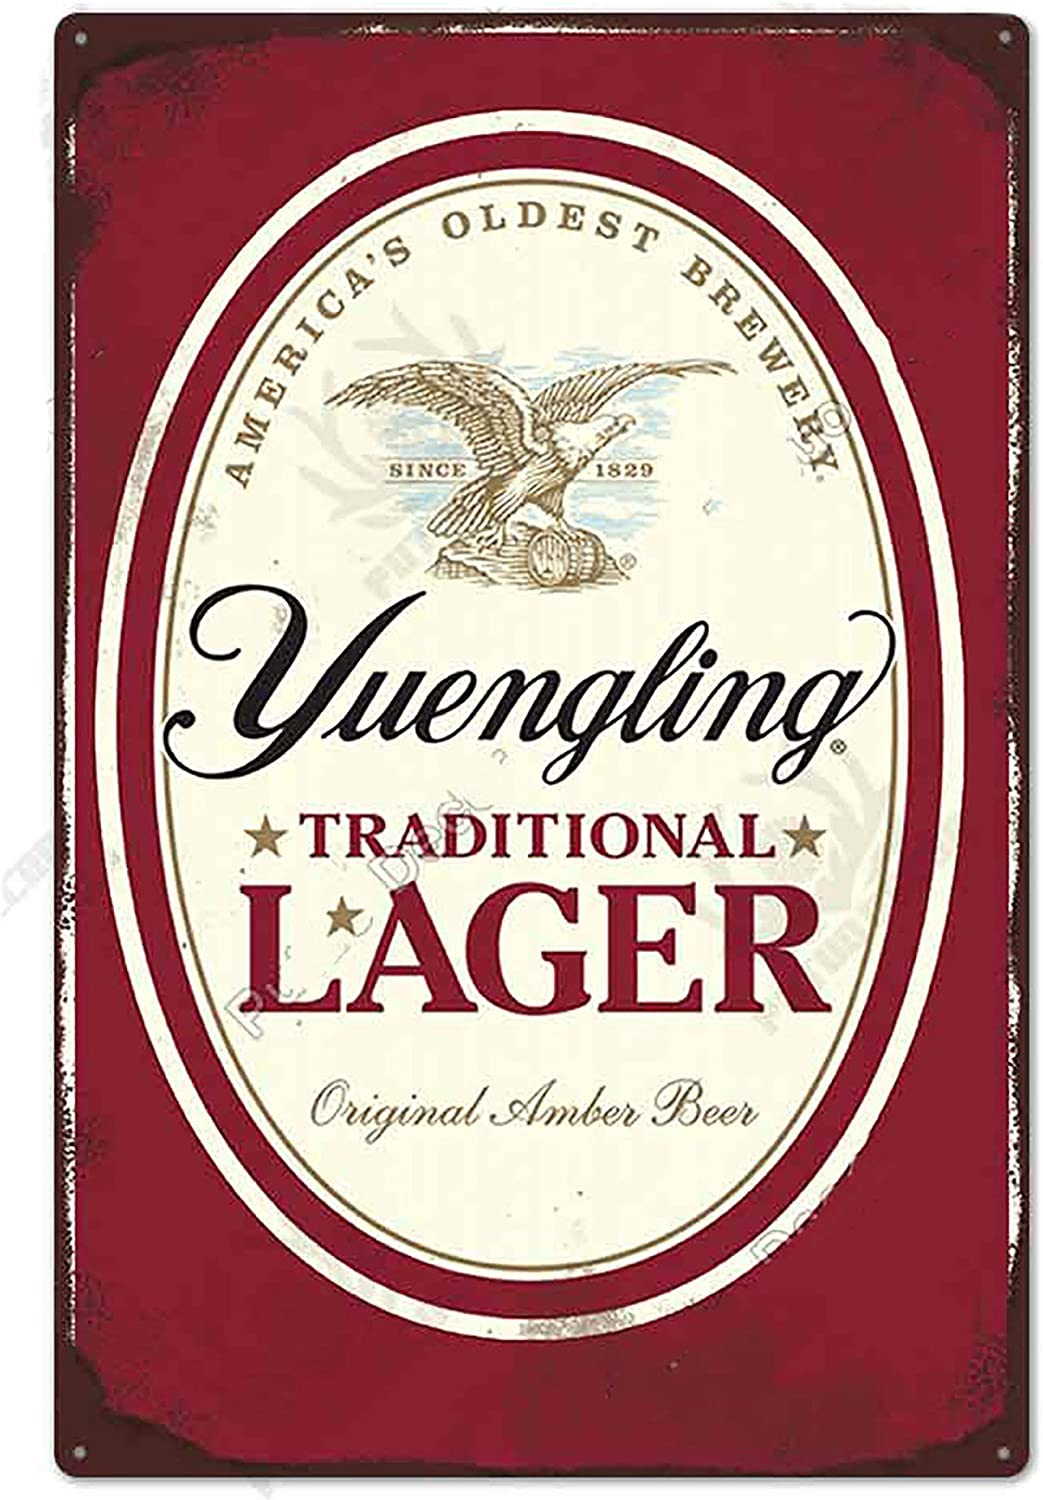 Beer TIN Sign Yuengling Traditional Lager - Metal Plaque, Retro Decor for Bar, Cafe, Pub, Size 8